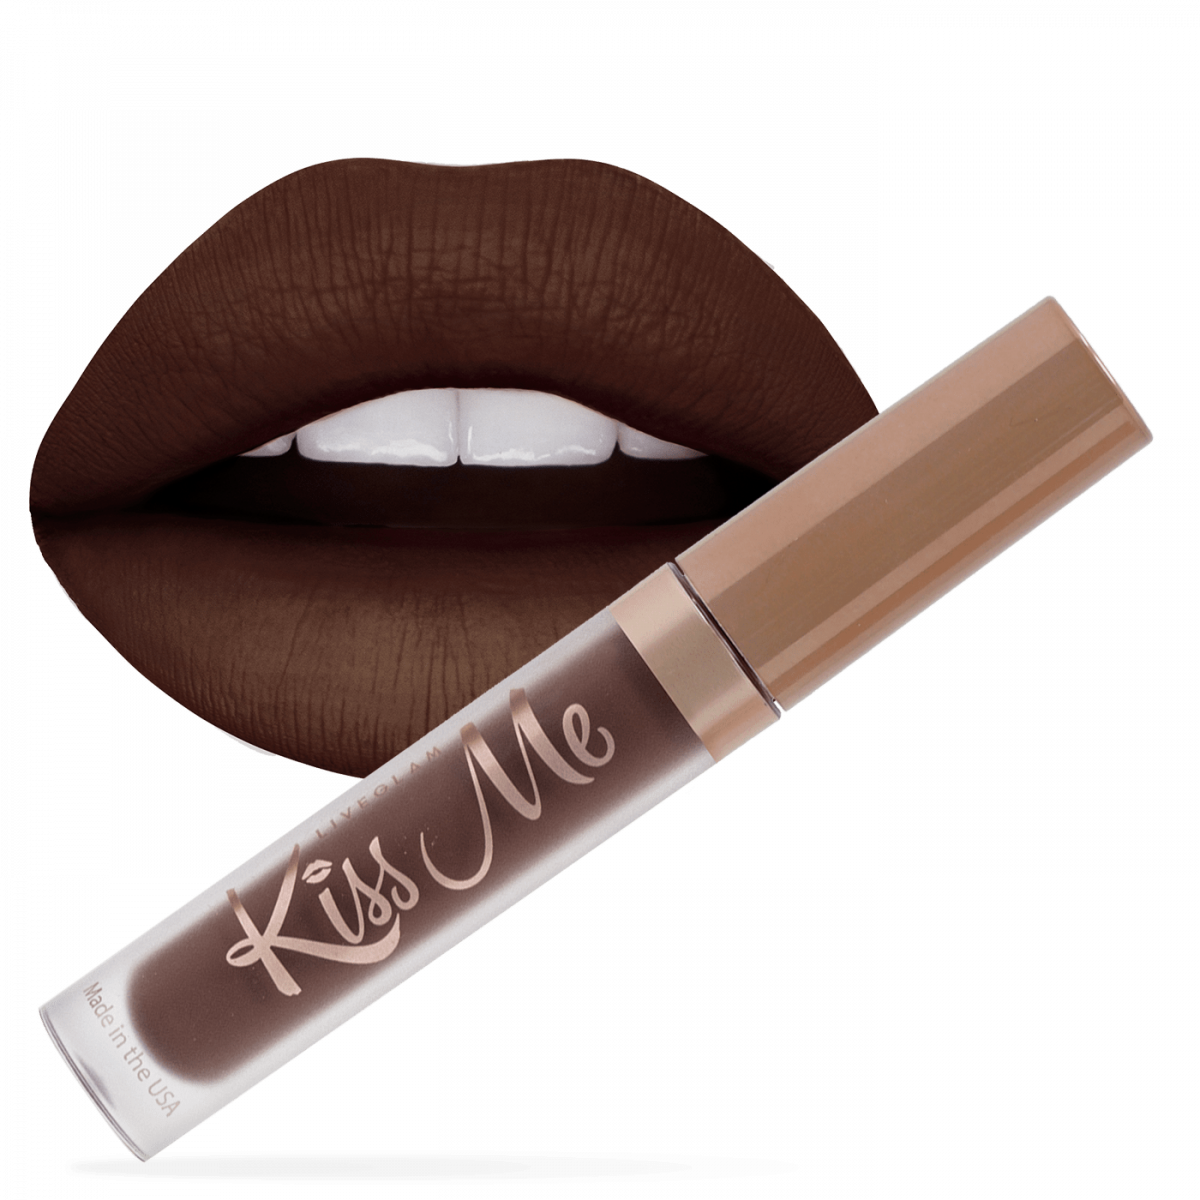 Beauty By Bianca LiveGlam KissMe Favorites Collection Most Wanted Lipstick